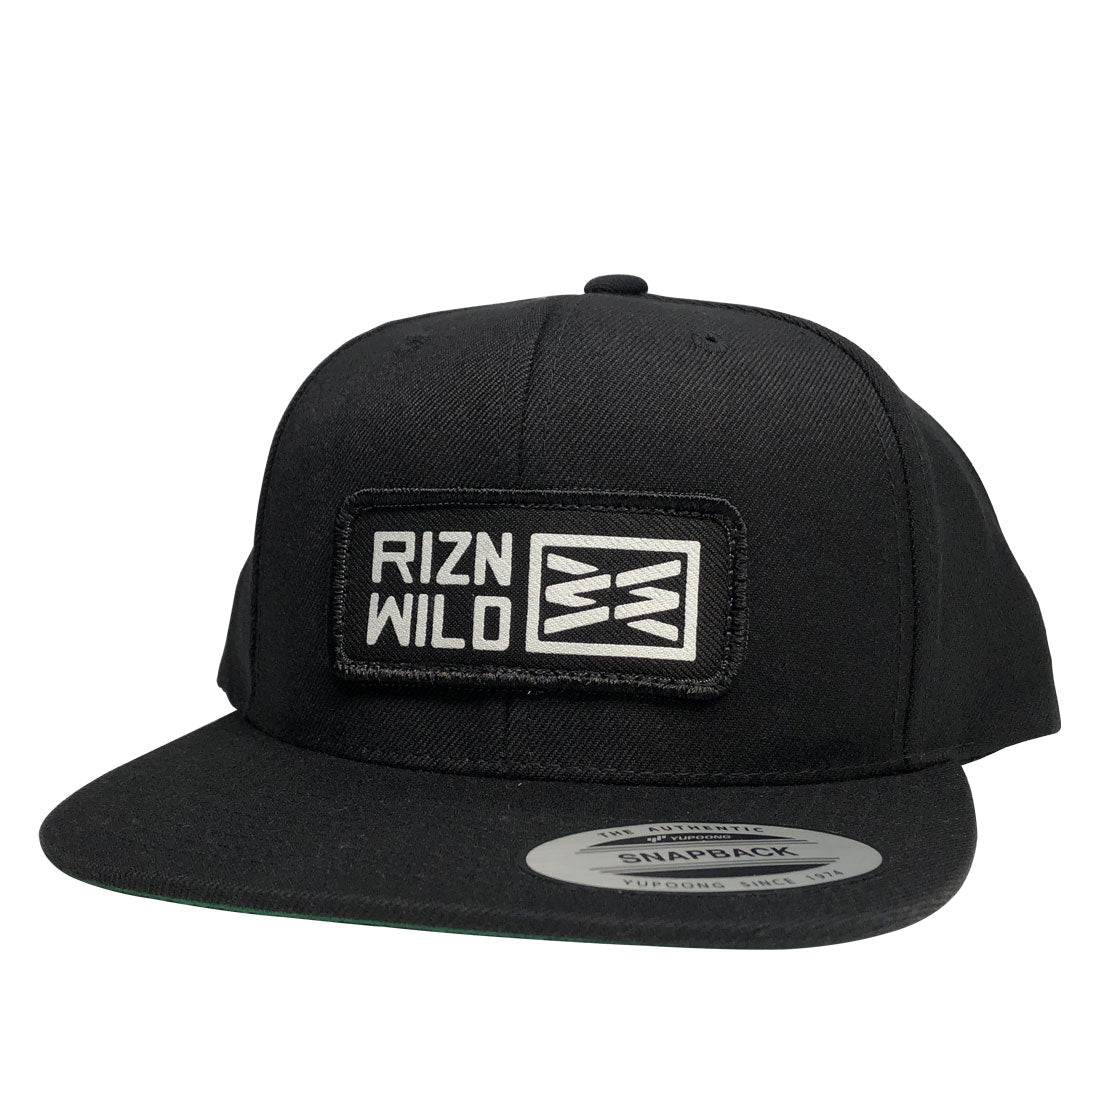 RIZNWILD | Black flex fit snap back hat